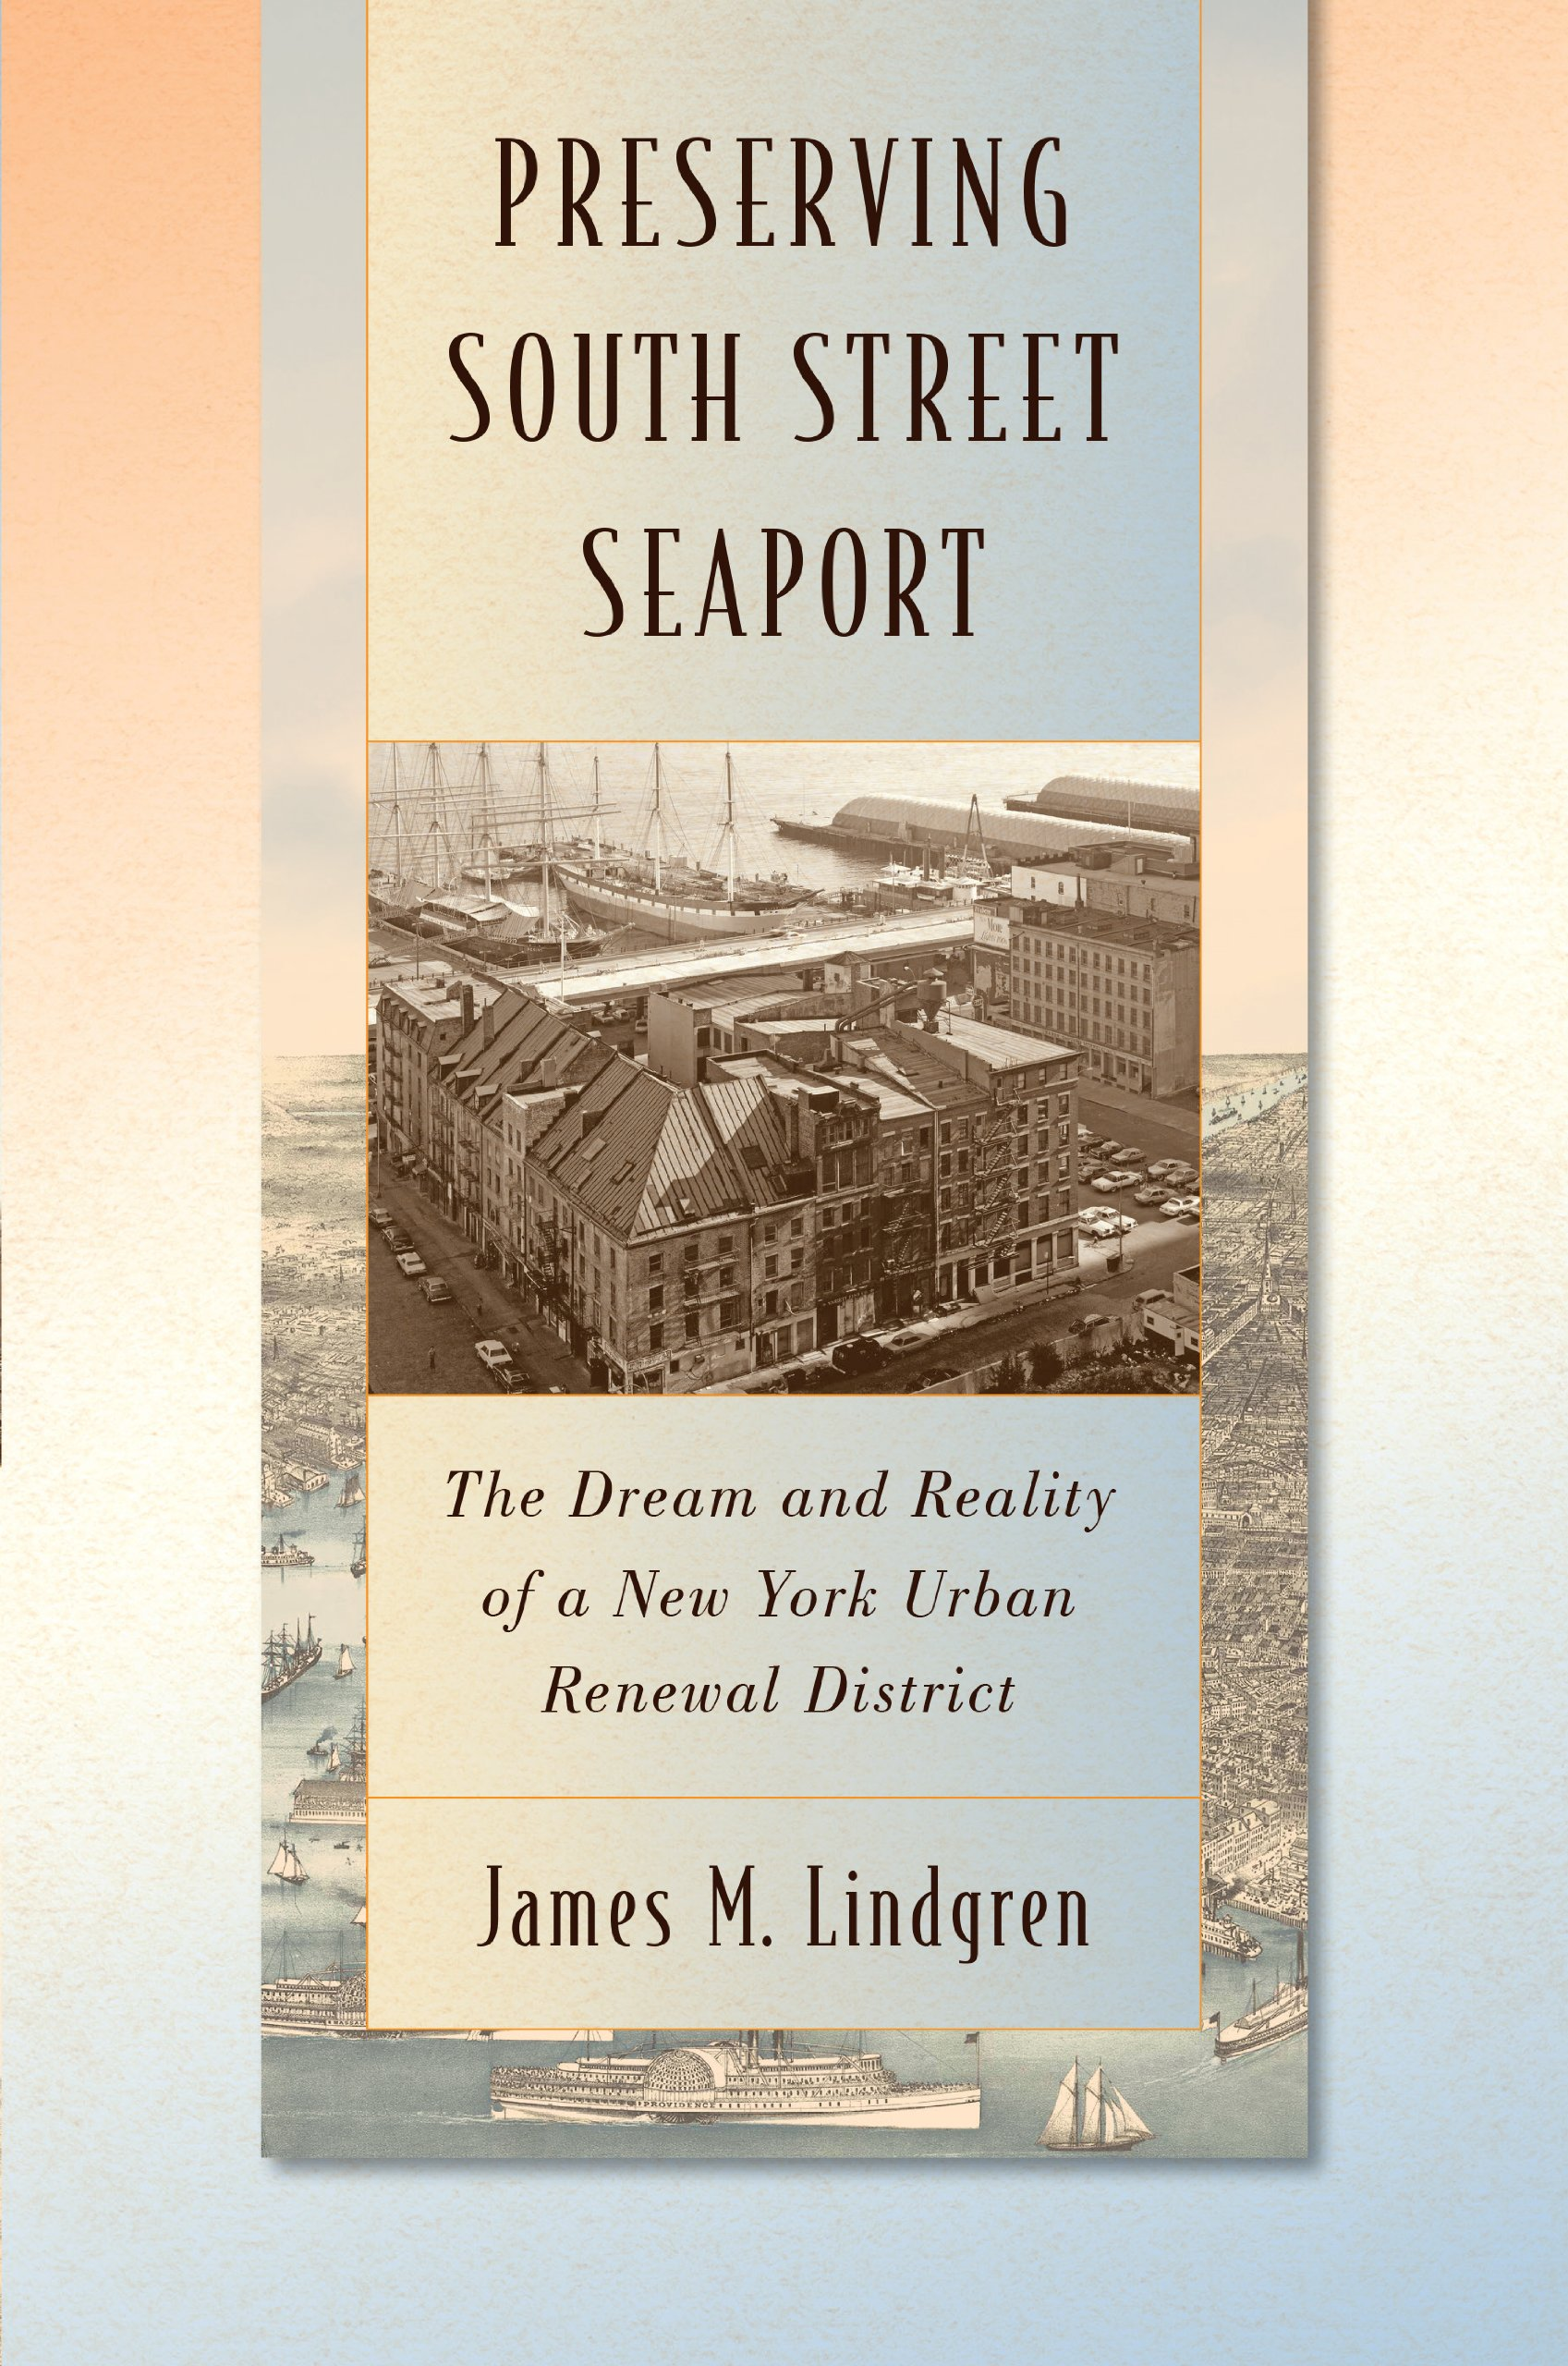 Preserving South Street Seaport: The Dream and Reality of a New York Urban Renewal District